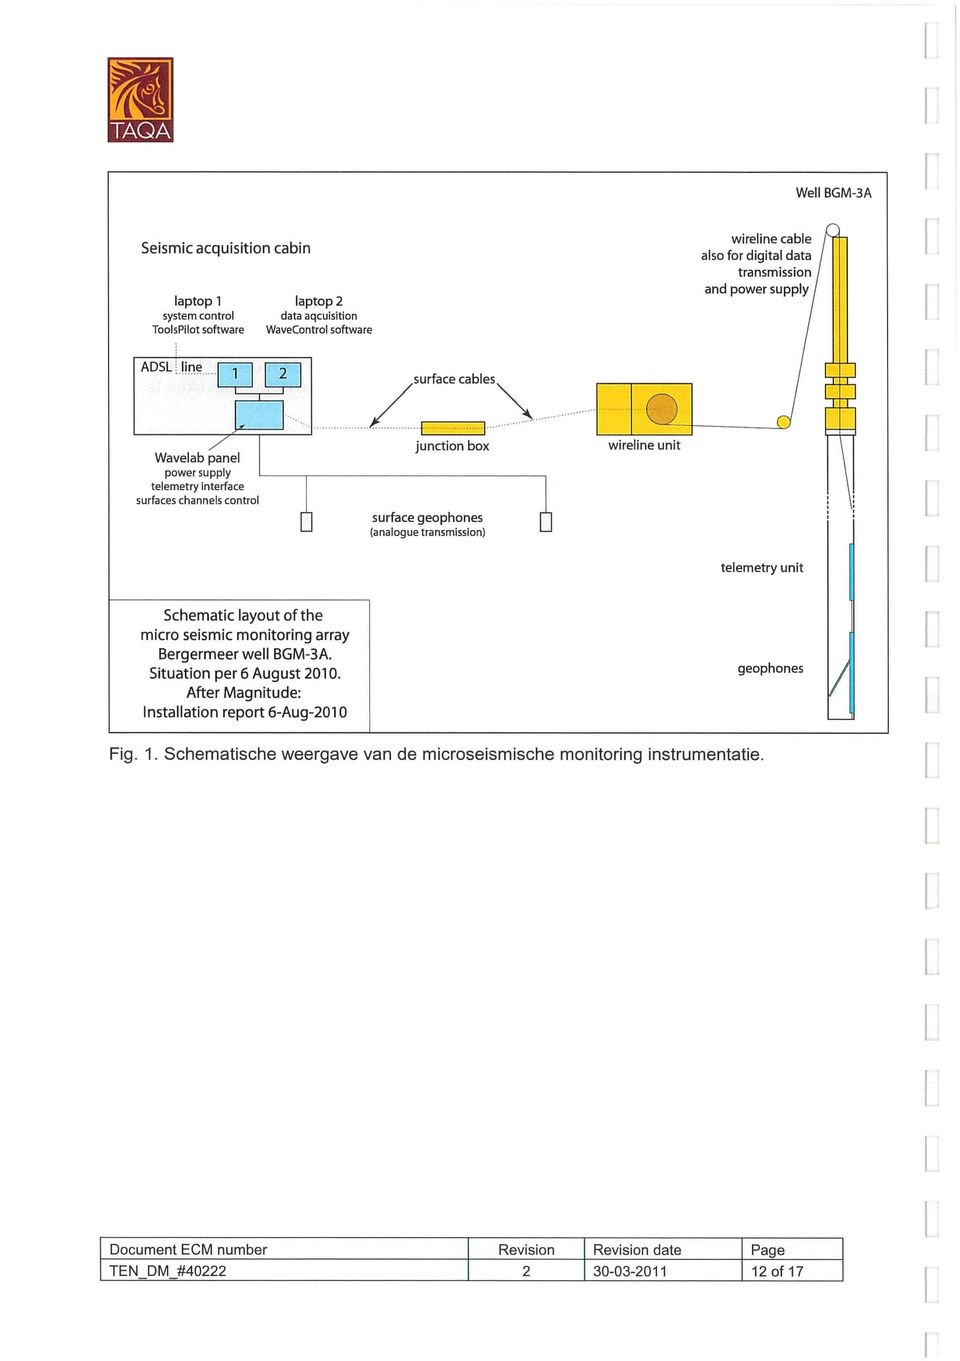 transmission) El wireline unit telemetry unit Schematic layout of the micro seismic monitoring array Bergermeer well BGM-3A. Situation per 6 August 2010.